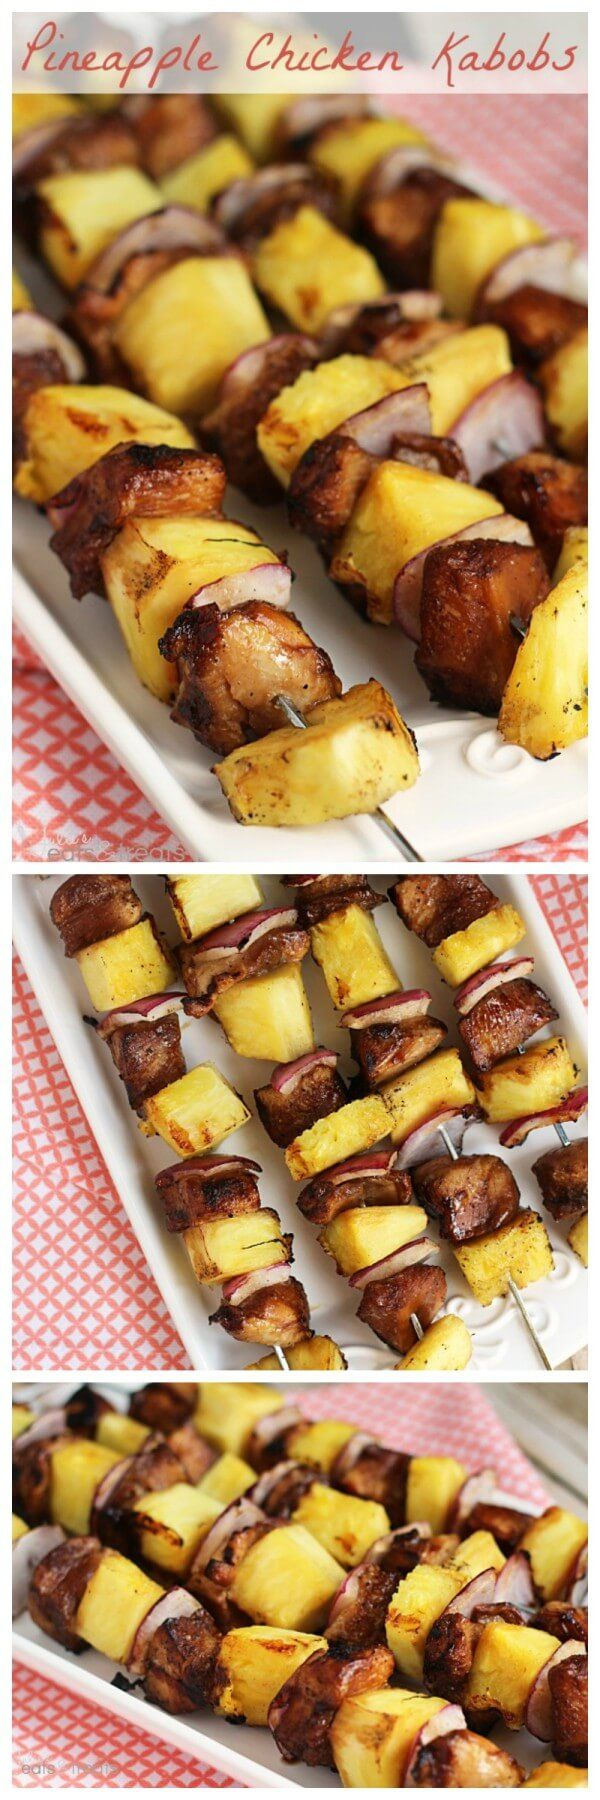 Pineapple+Chicken+Kabob+~+Quick+and+Easy+Marinated+Kabobs+that+are+the+Perfect+Combination+of+Sweet+and+Tangy!